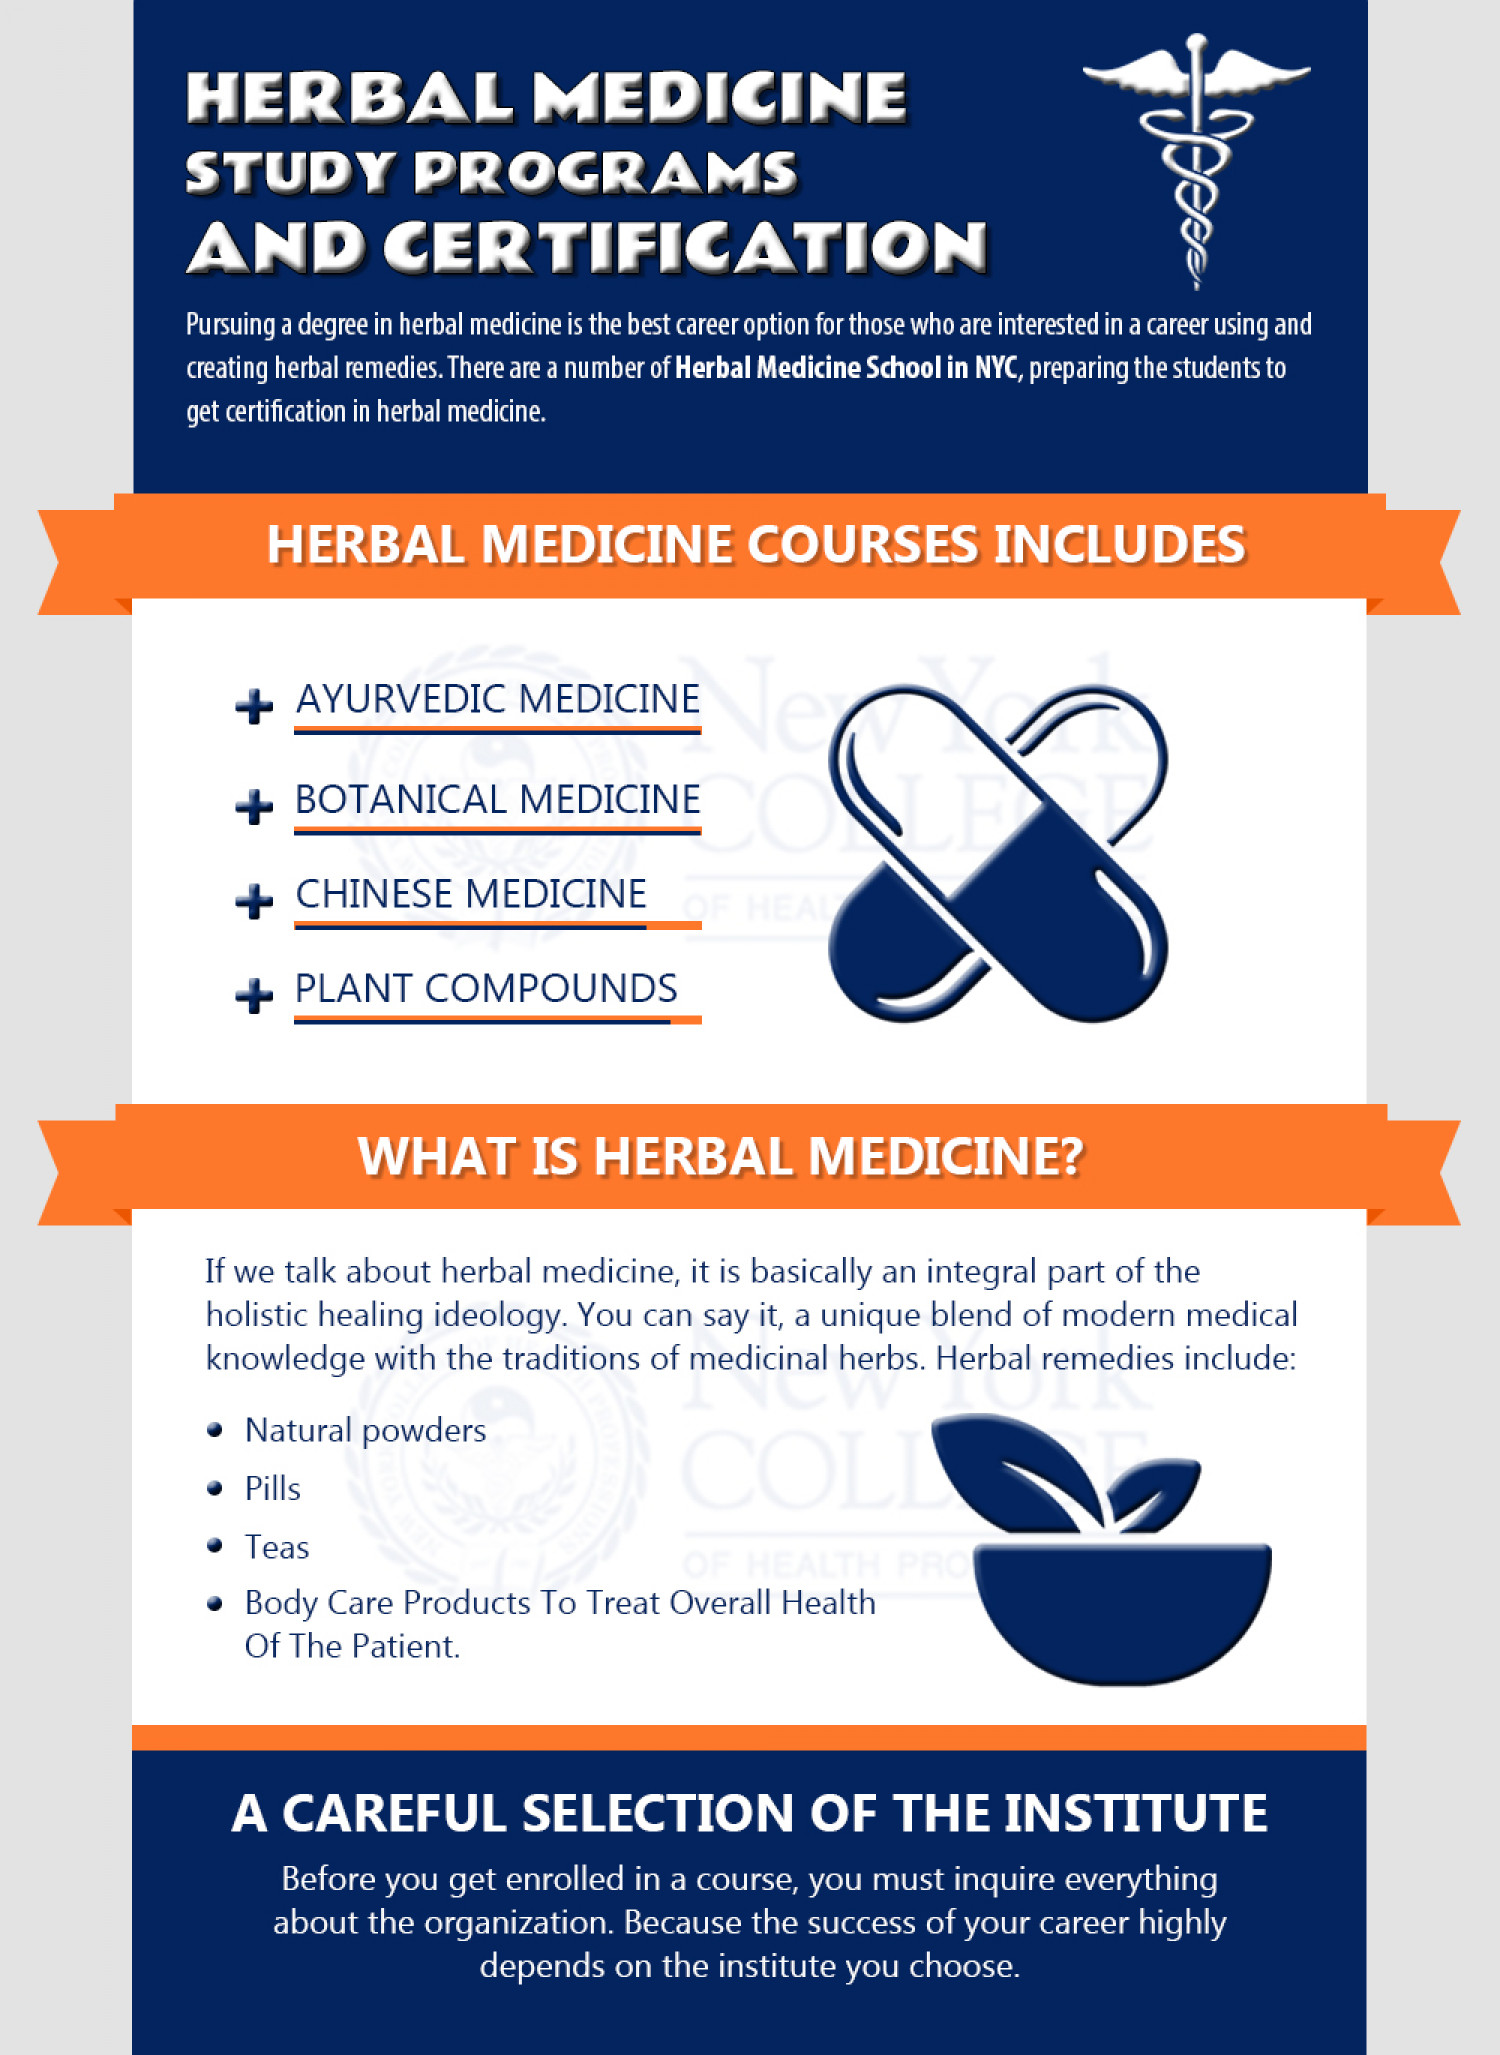 Herbal Medicine Study Programs And Certification Infographic